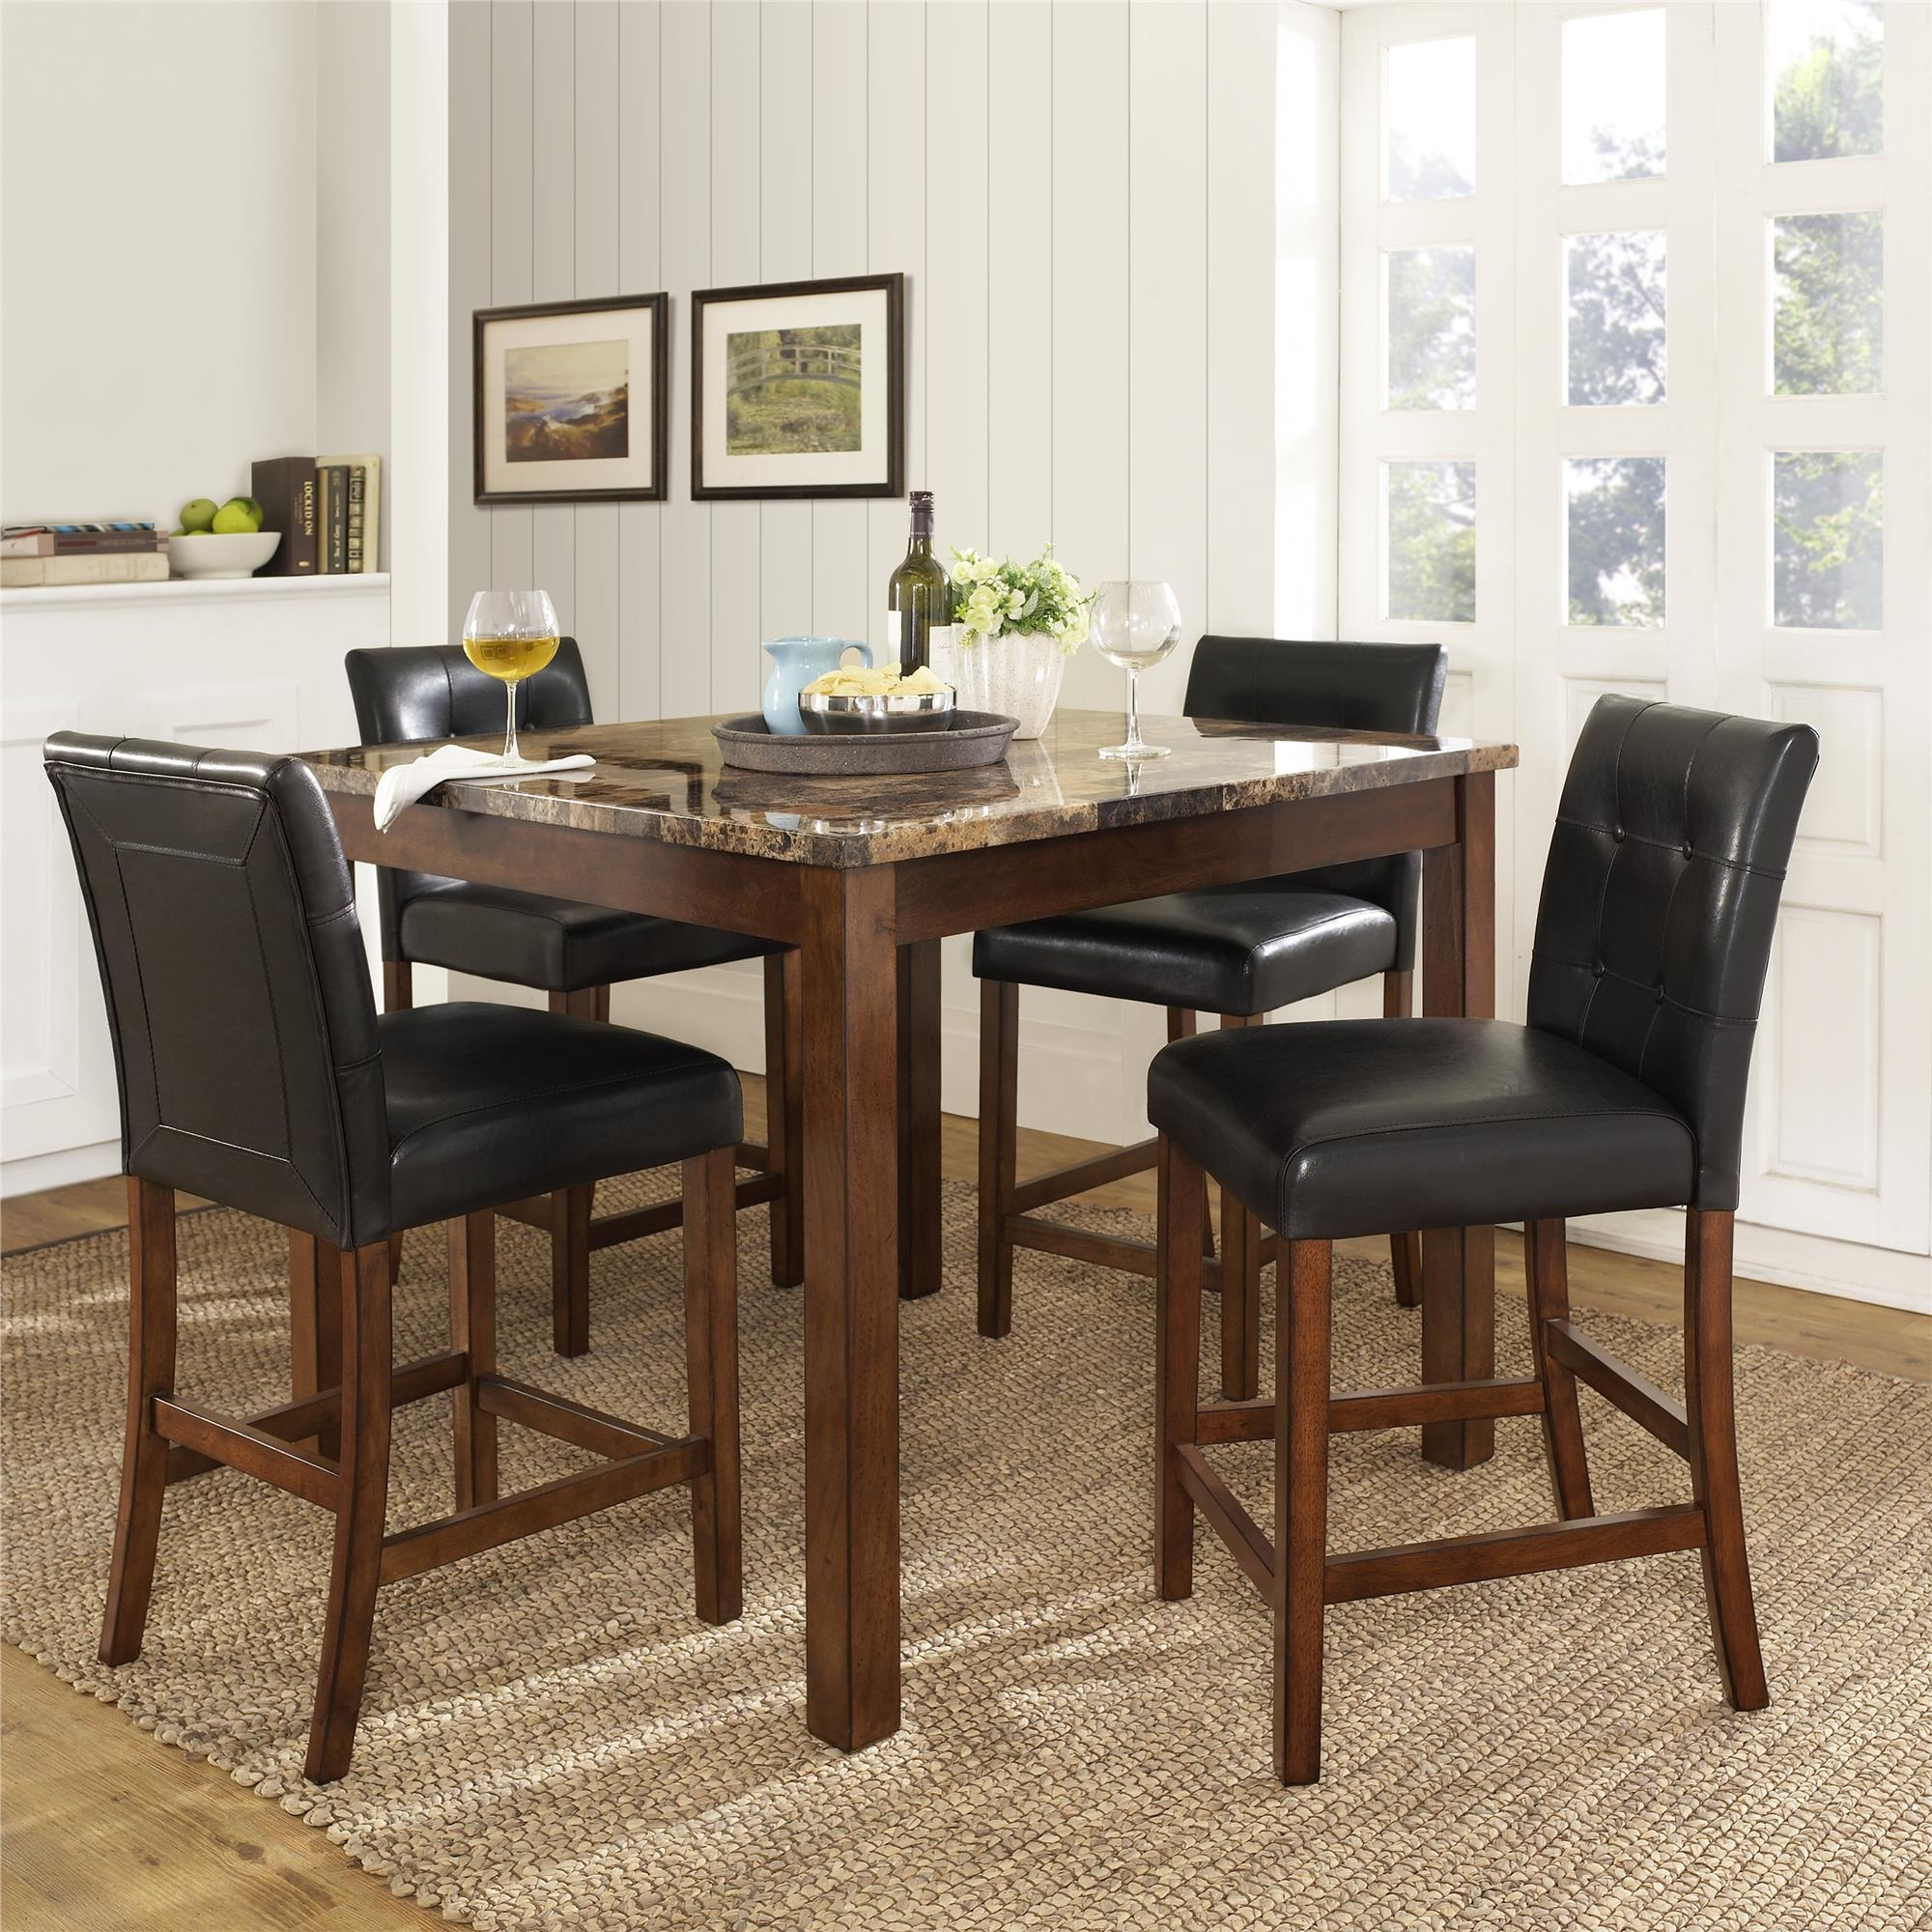 Magnificent Cheap Dining Table Sets 9 Wonderful Big Lots 9 ...